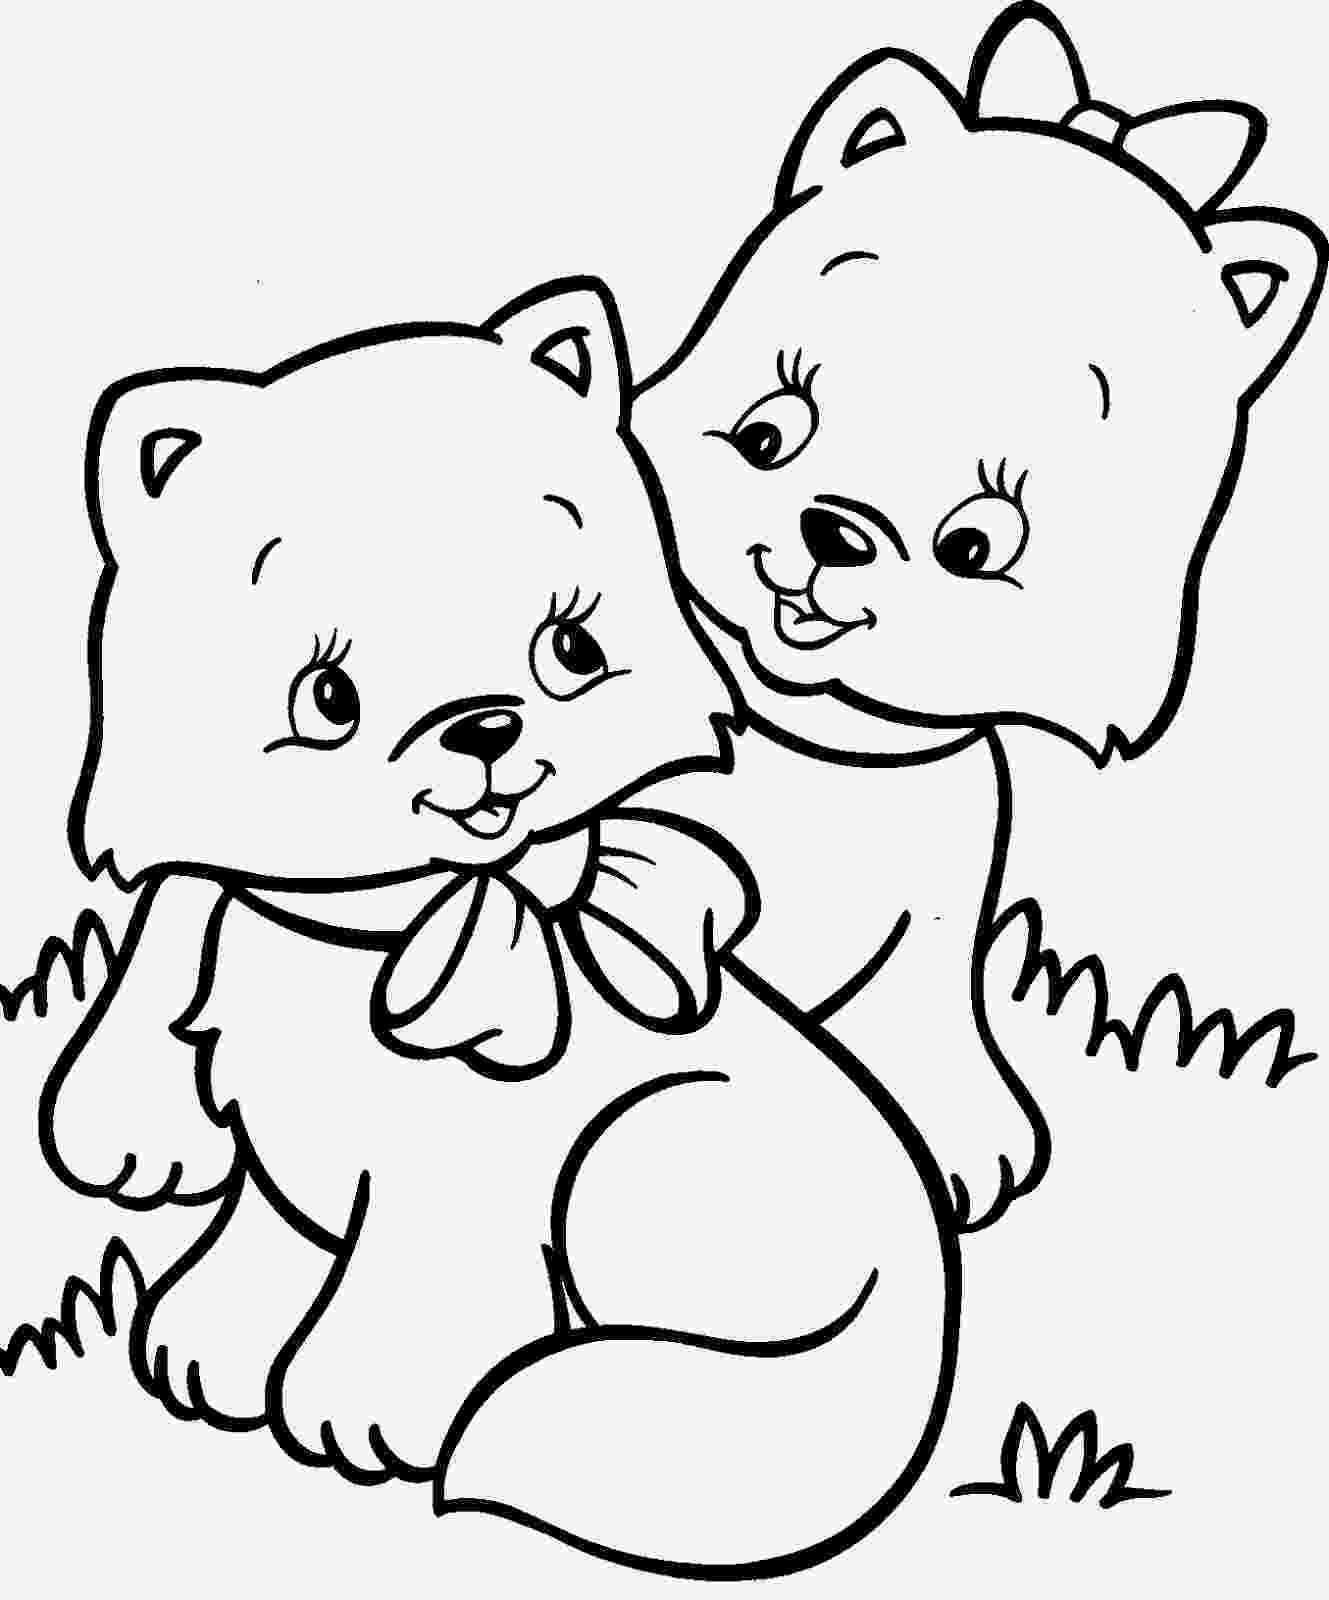 kitty cat coloring pages kitten meowing coloring page free printable coloring pages cat pages coloring kitty